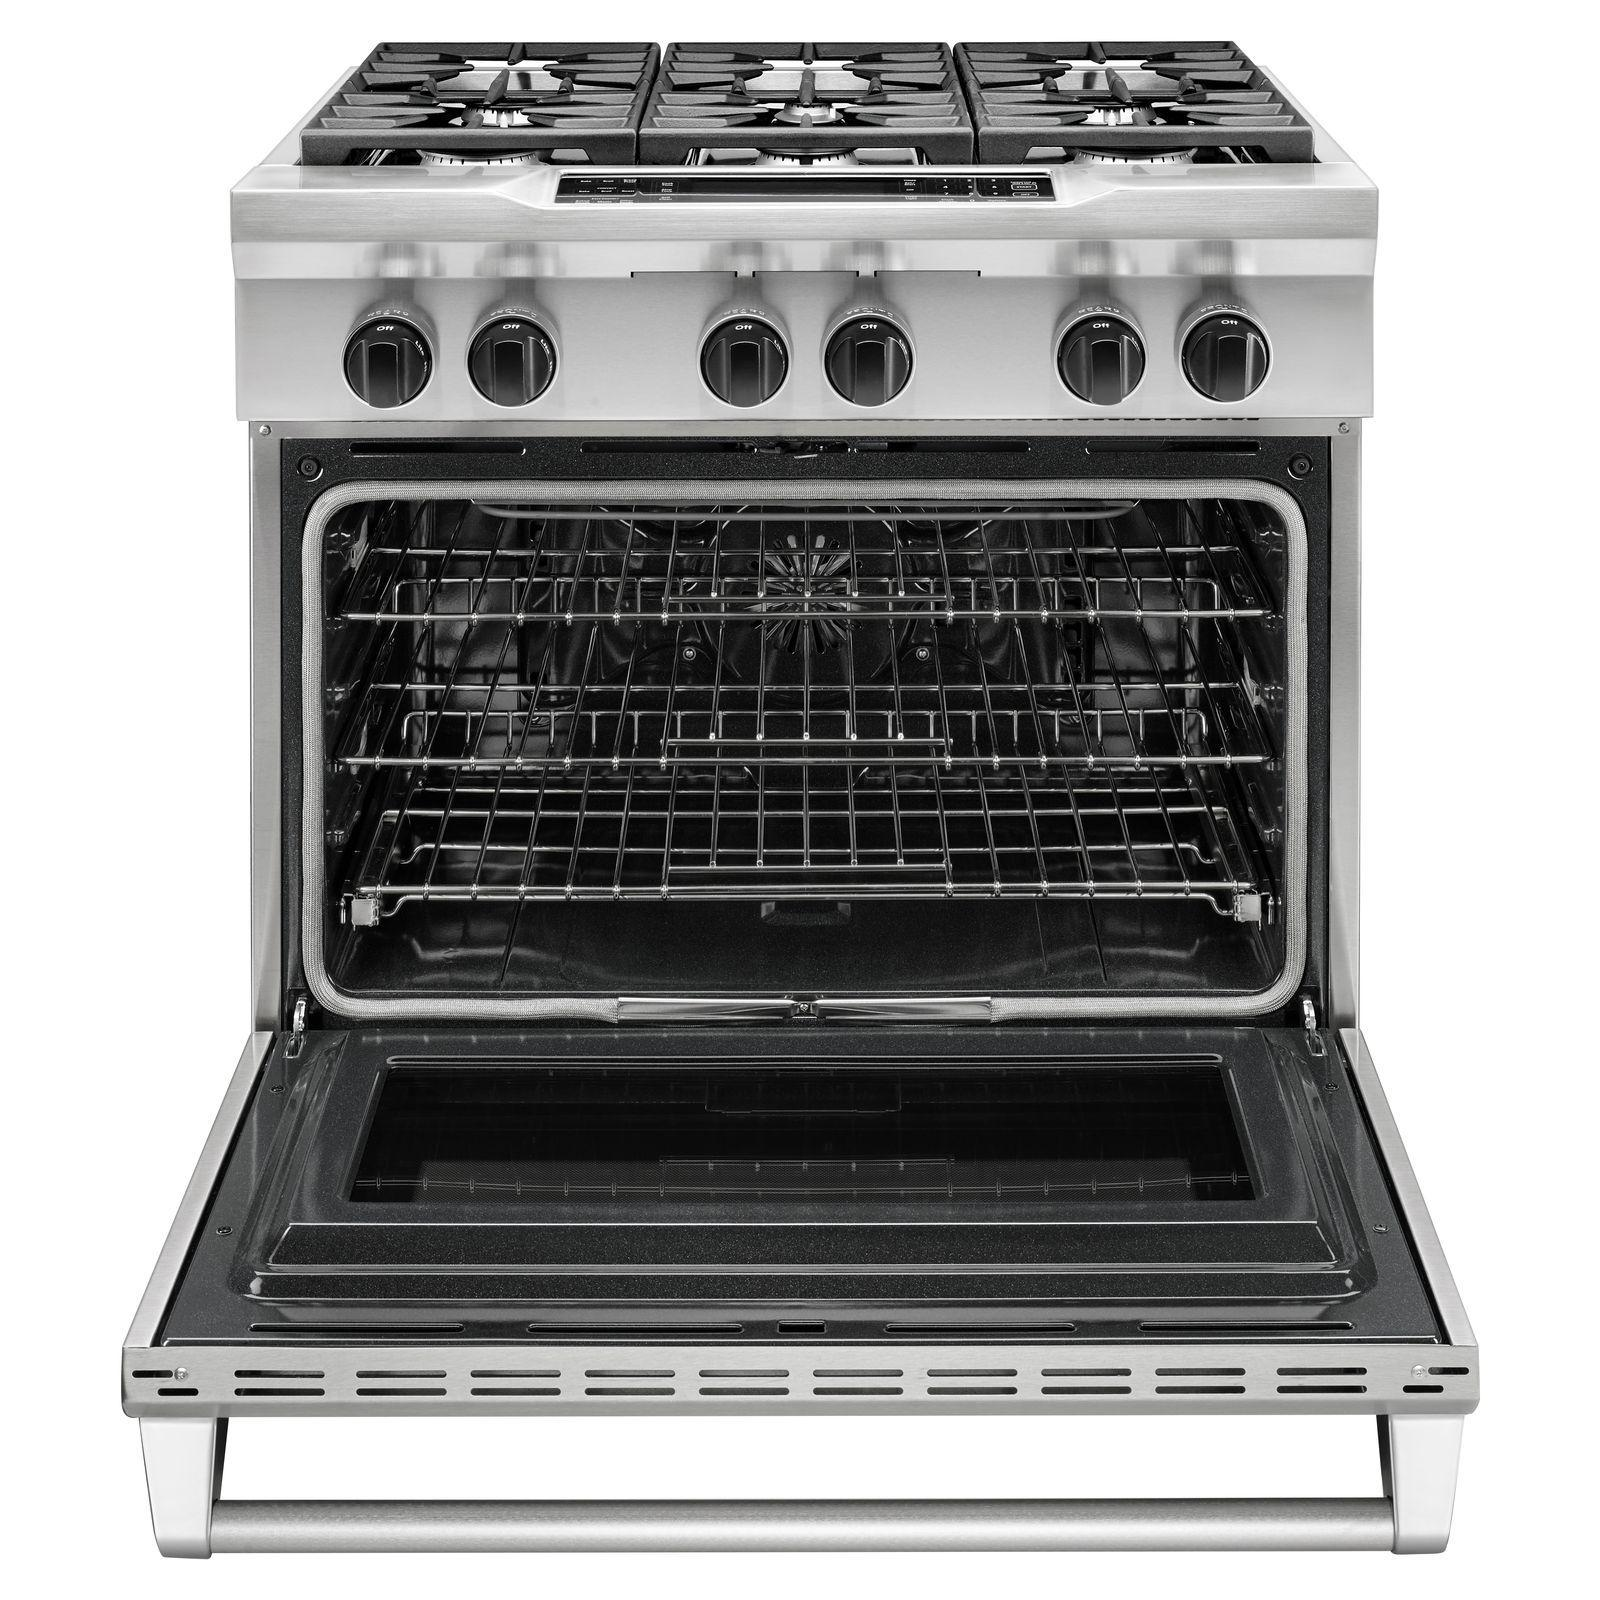 Viking Gas Cooktop >> KDRS467VSS | Kitchenaid kdrs467vss | Gas Ranges Stainless Steel